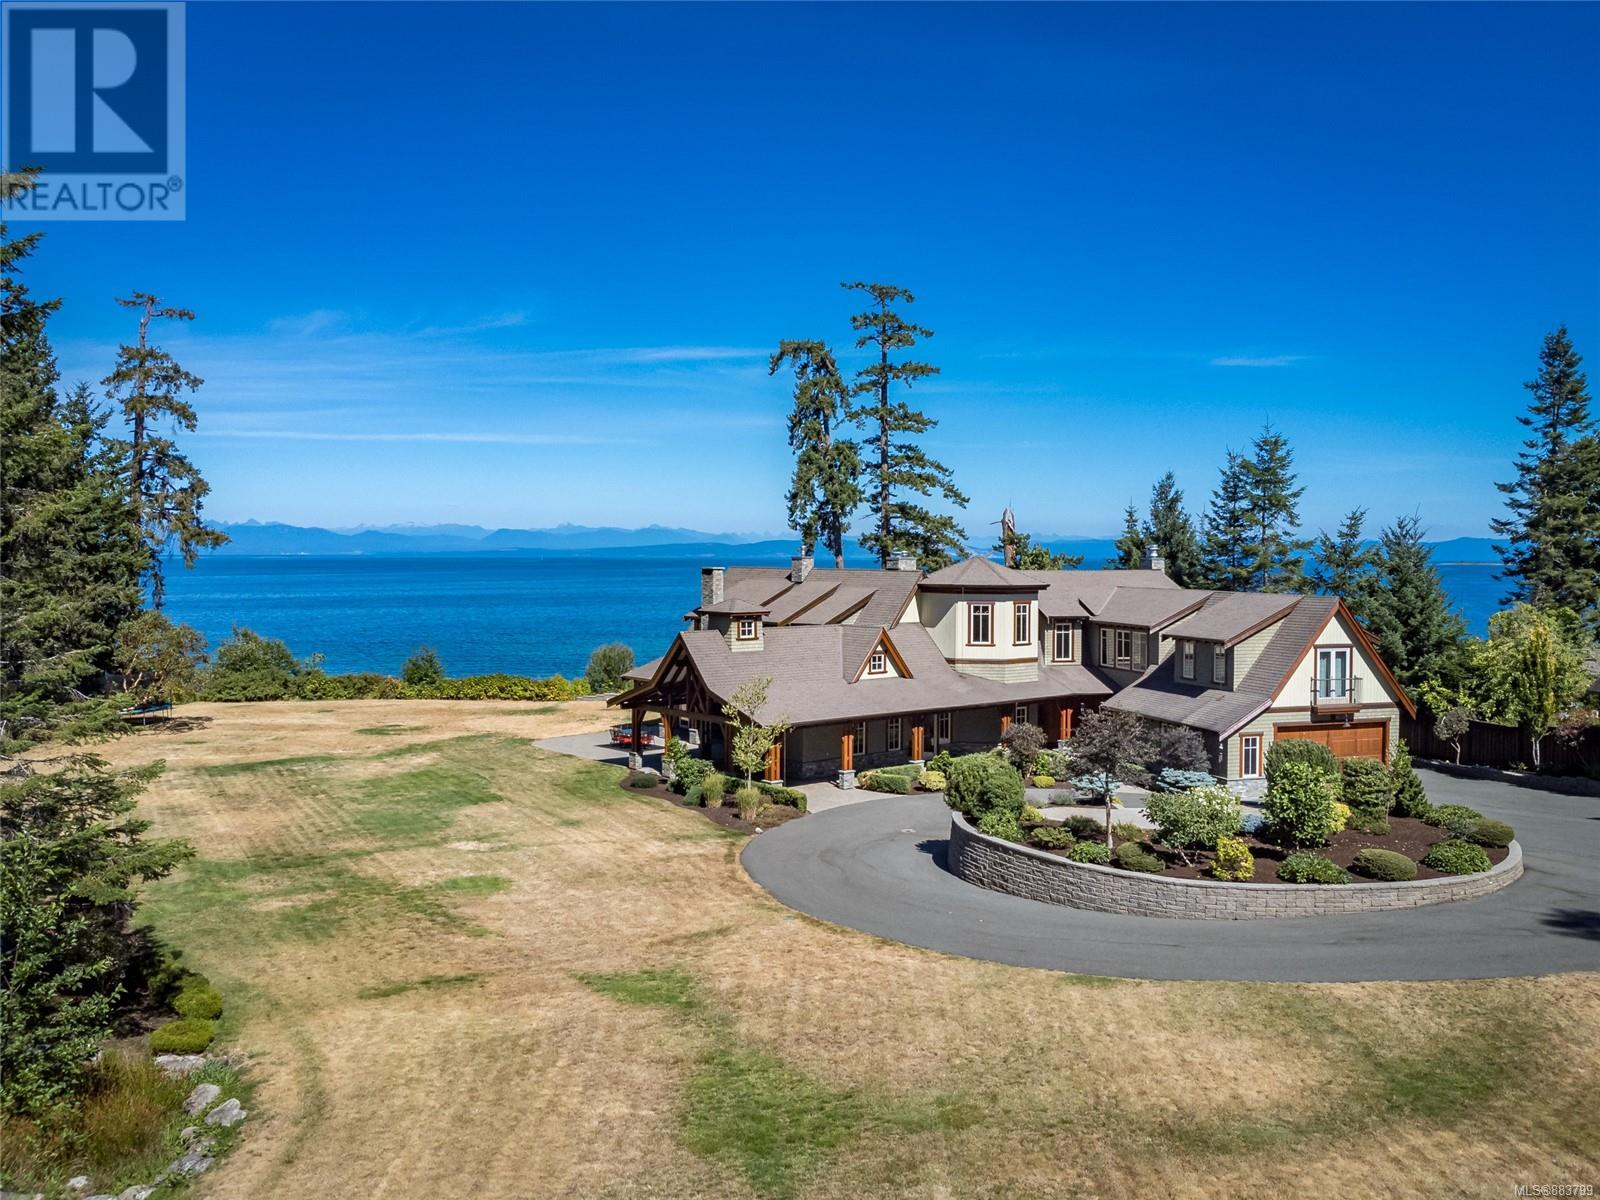 MLS® #883799 - Courtenay House For sale Image #91